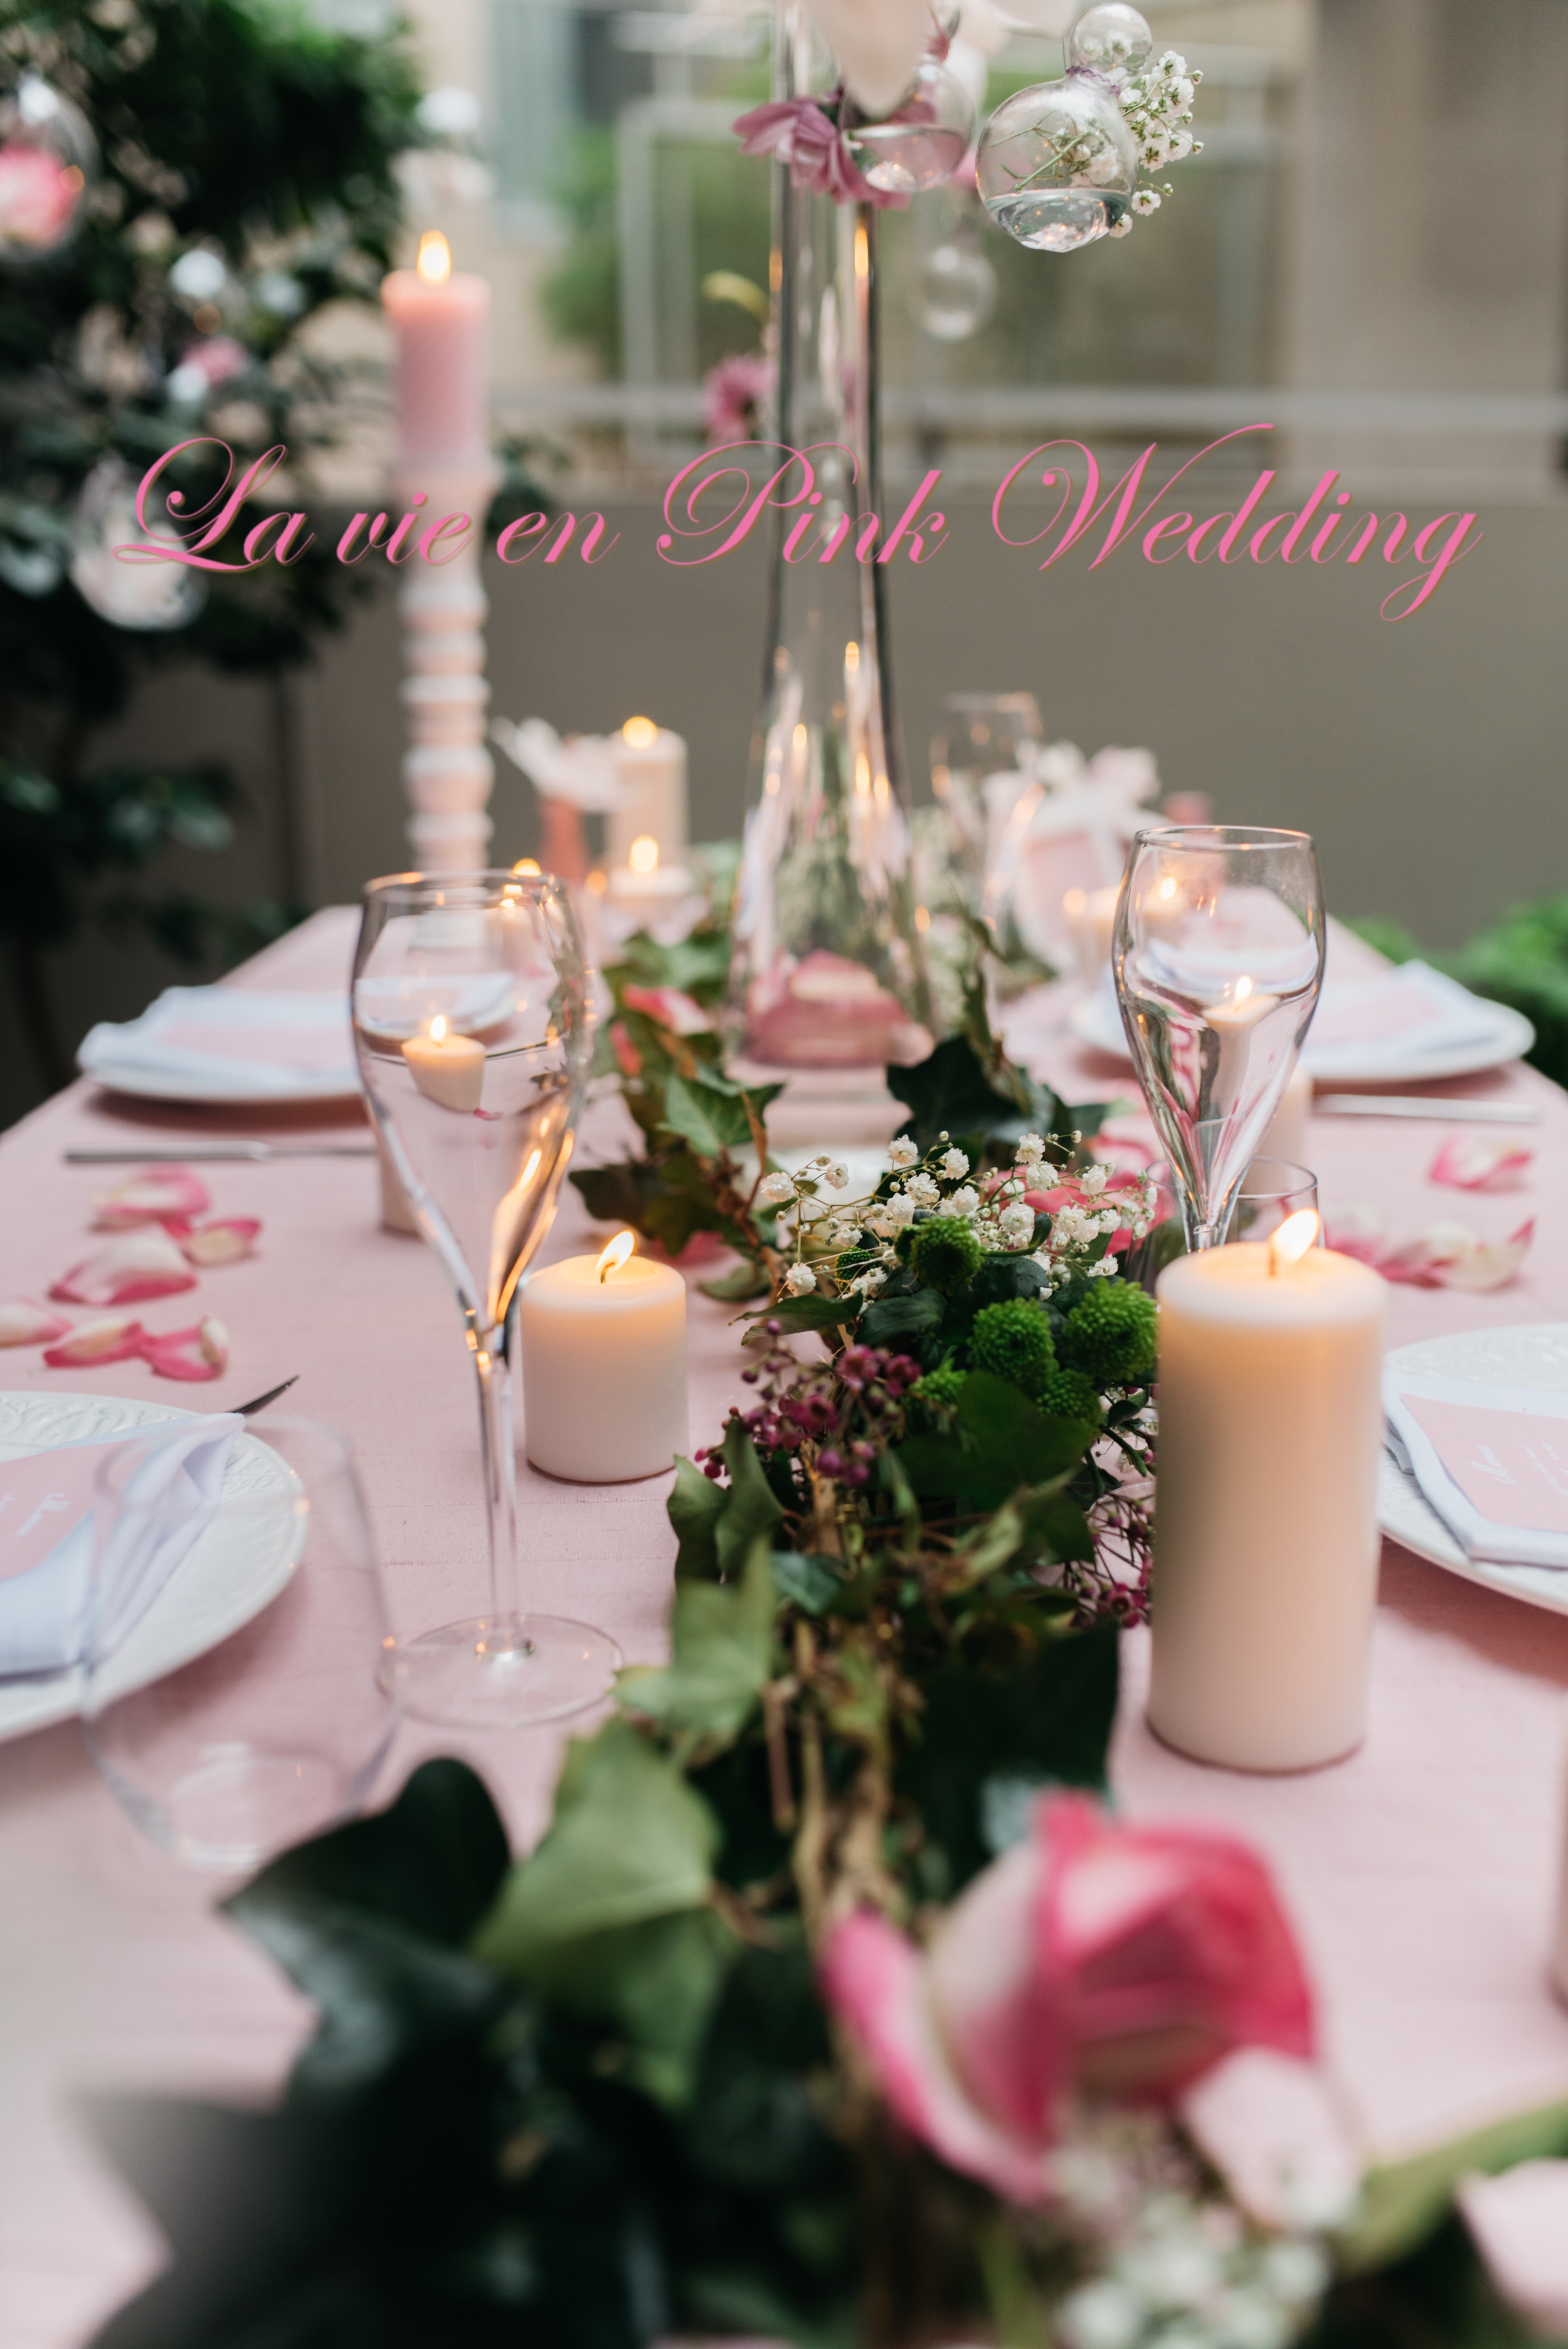 La vie en Pink Wedding